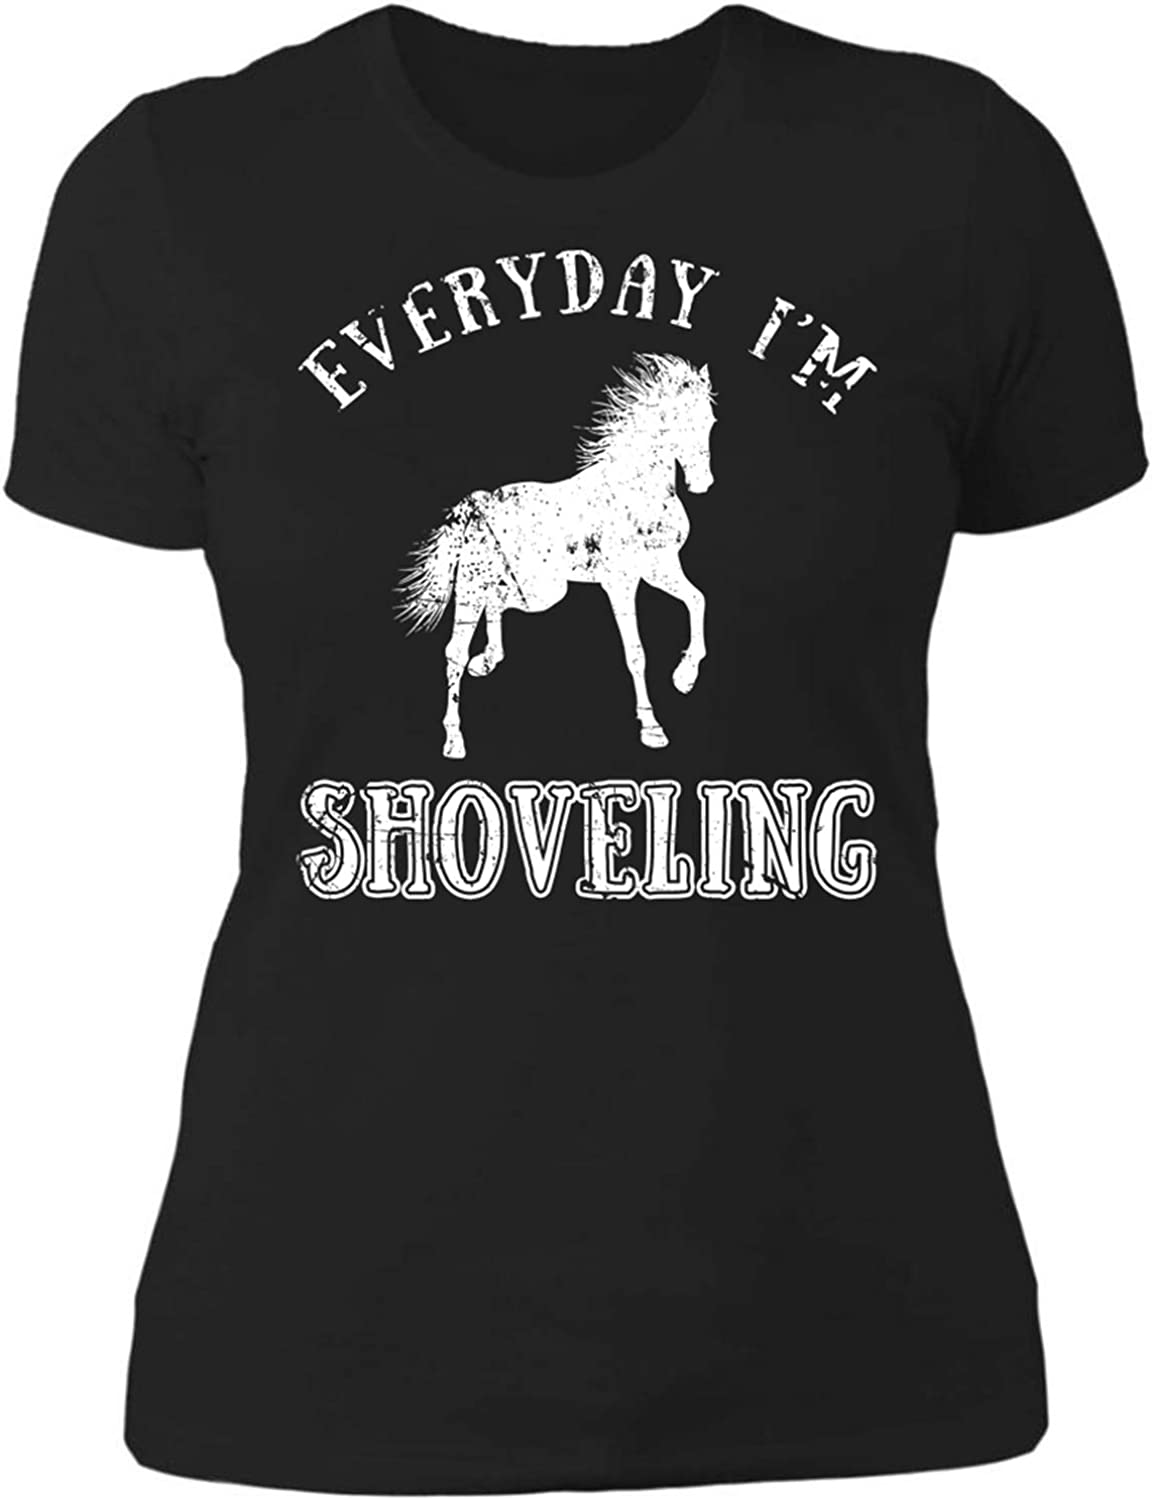 Everyday I/'m Shoveling Ladies Fitted T-Shirt Funny Horse Riding TShirt Riding